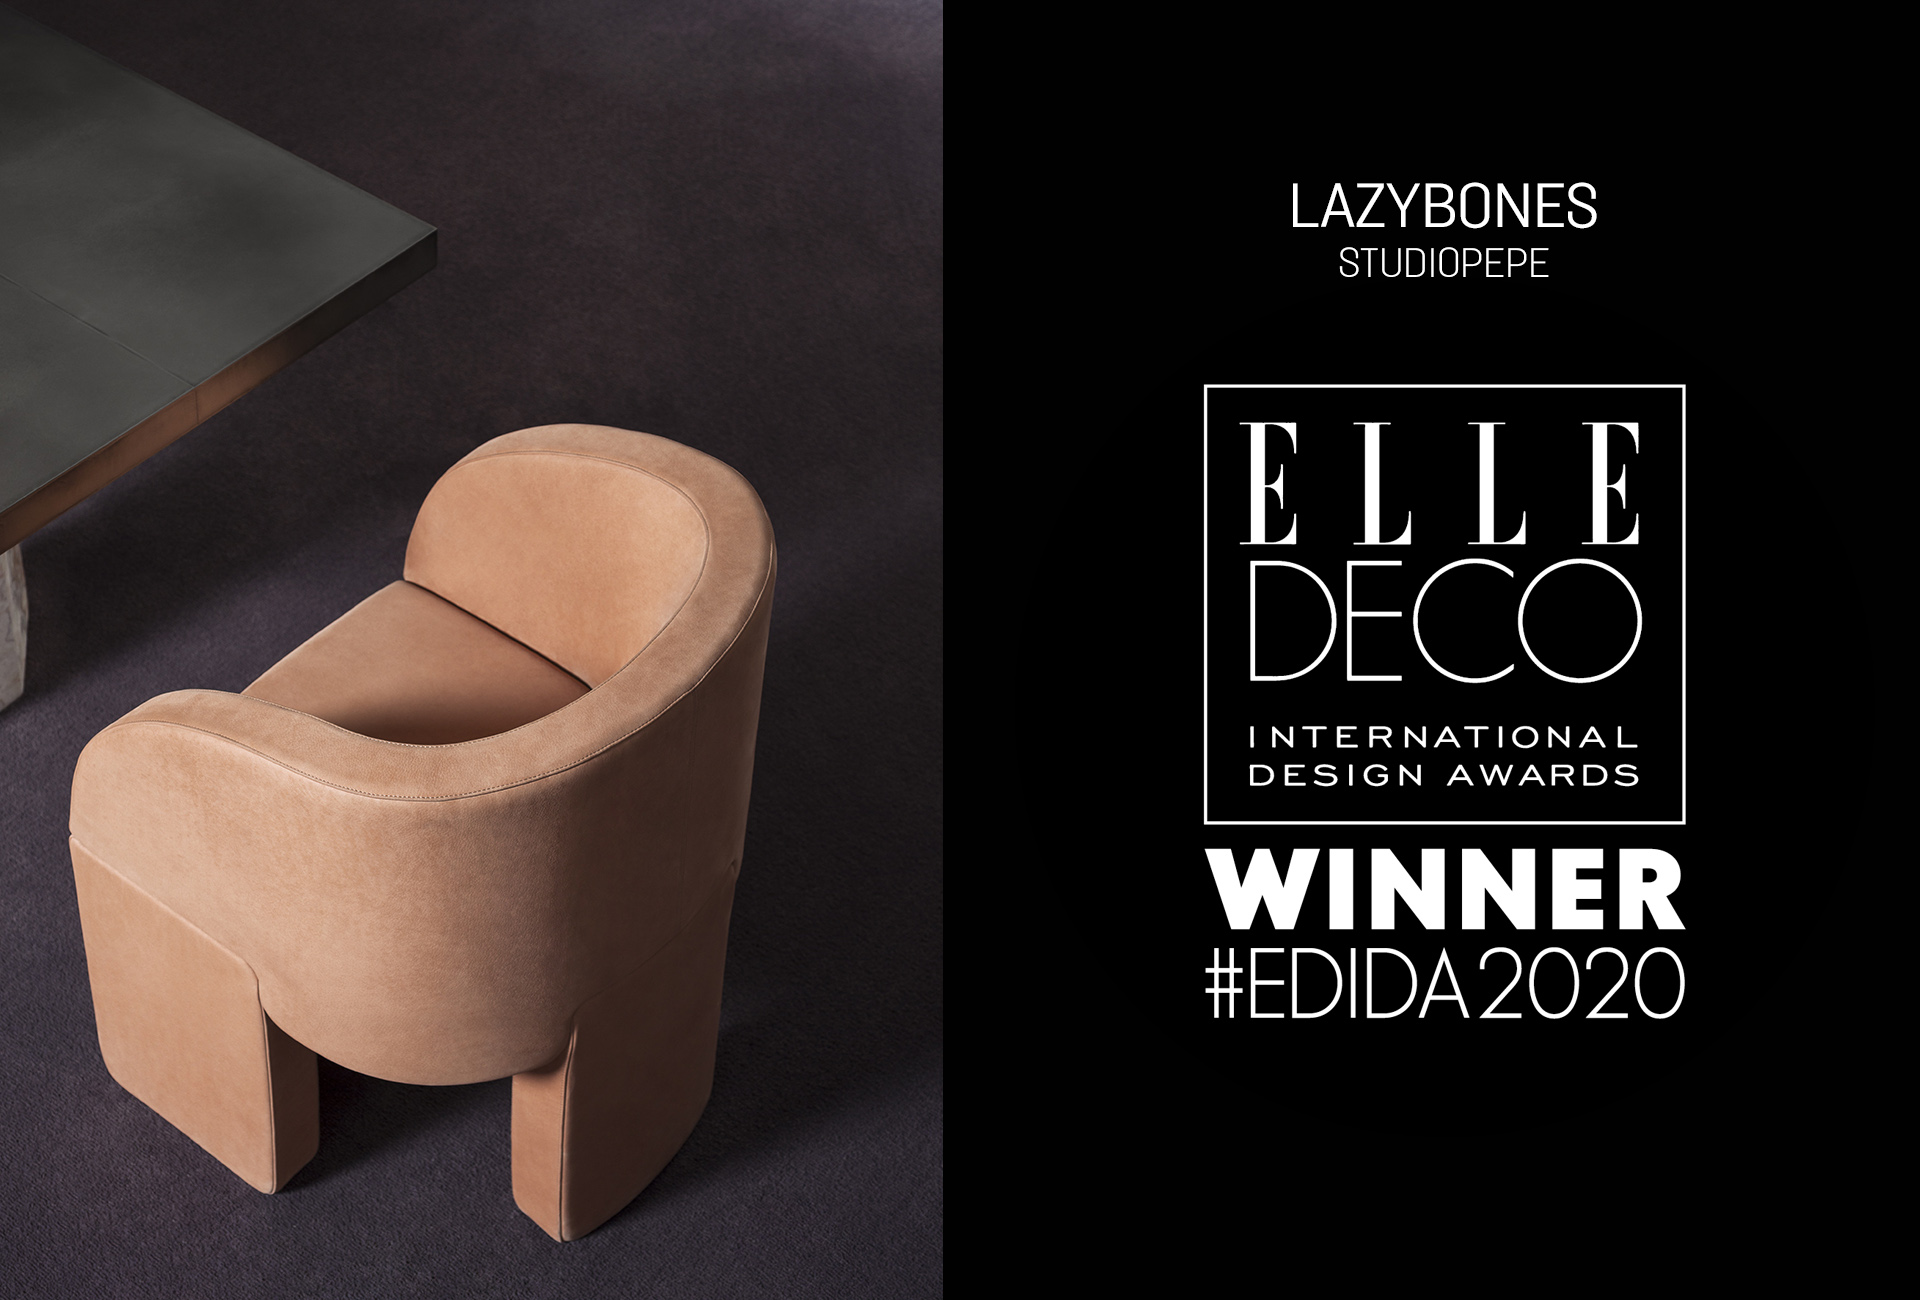 ELLE DECO INTERNATIONAL DESIGN AWARDS 2020 LAZYBONES